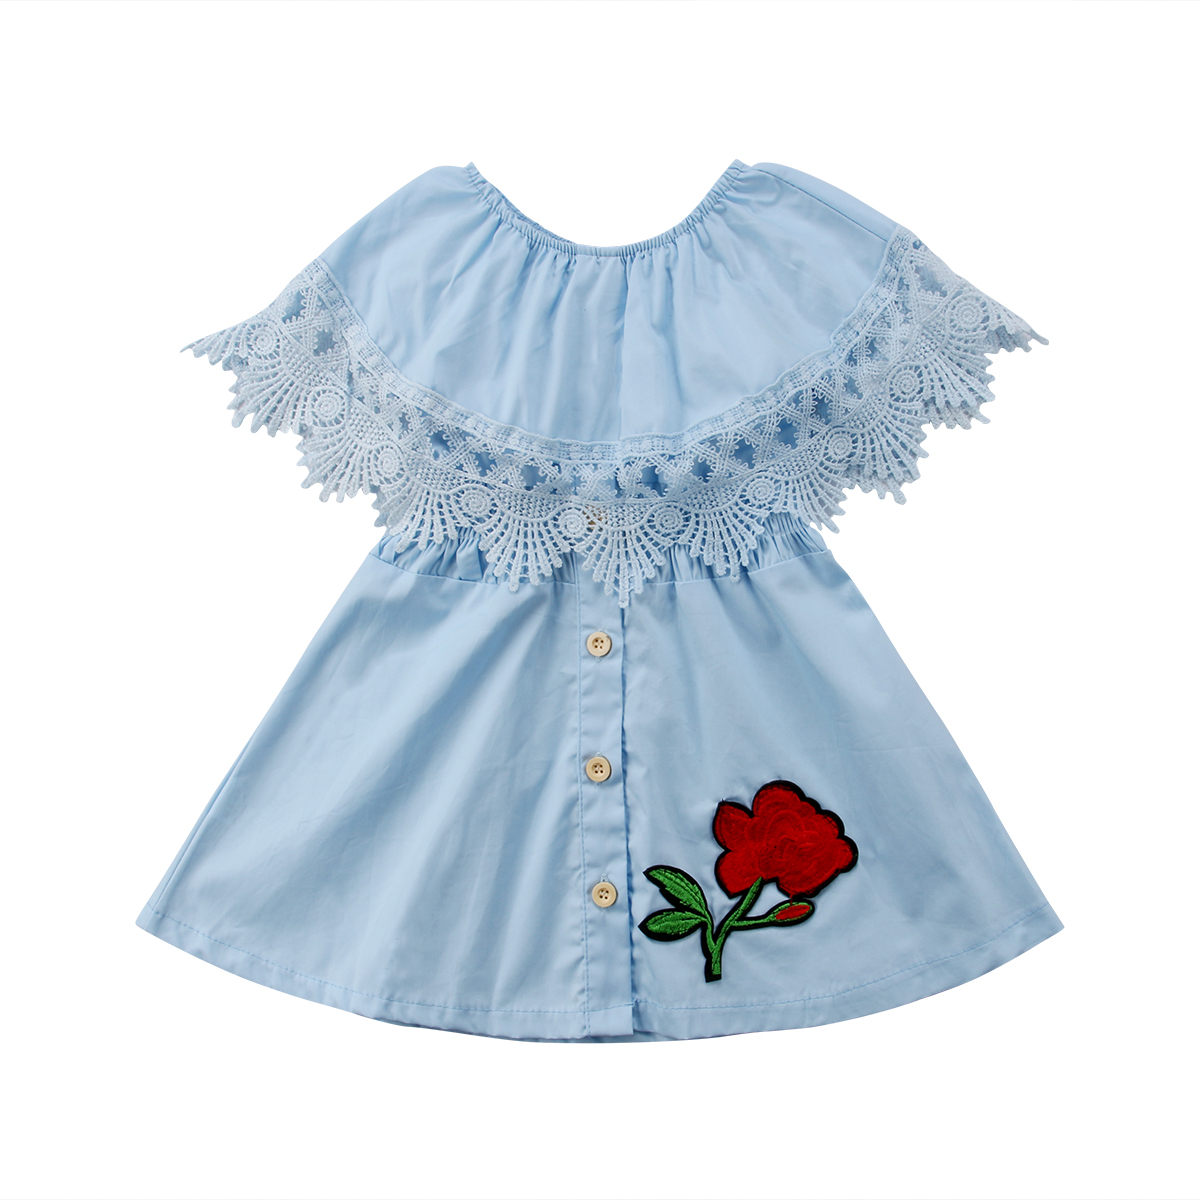 Toddler Kids Baby Girl Clothes Lace Ruffle Embroidery Flower Summer Party Dress Off Shoulder Mini Dresses Girls 1-6T 2017 new toddler kids girls summer dress off shoulder ruffles lace dresses solid white baby girl clothes princess costume 2 7y